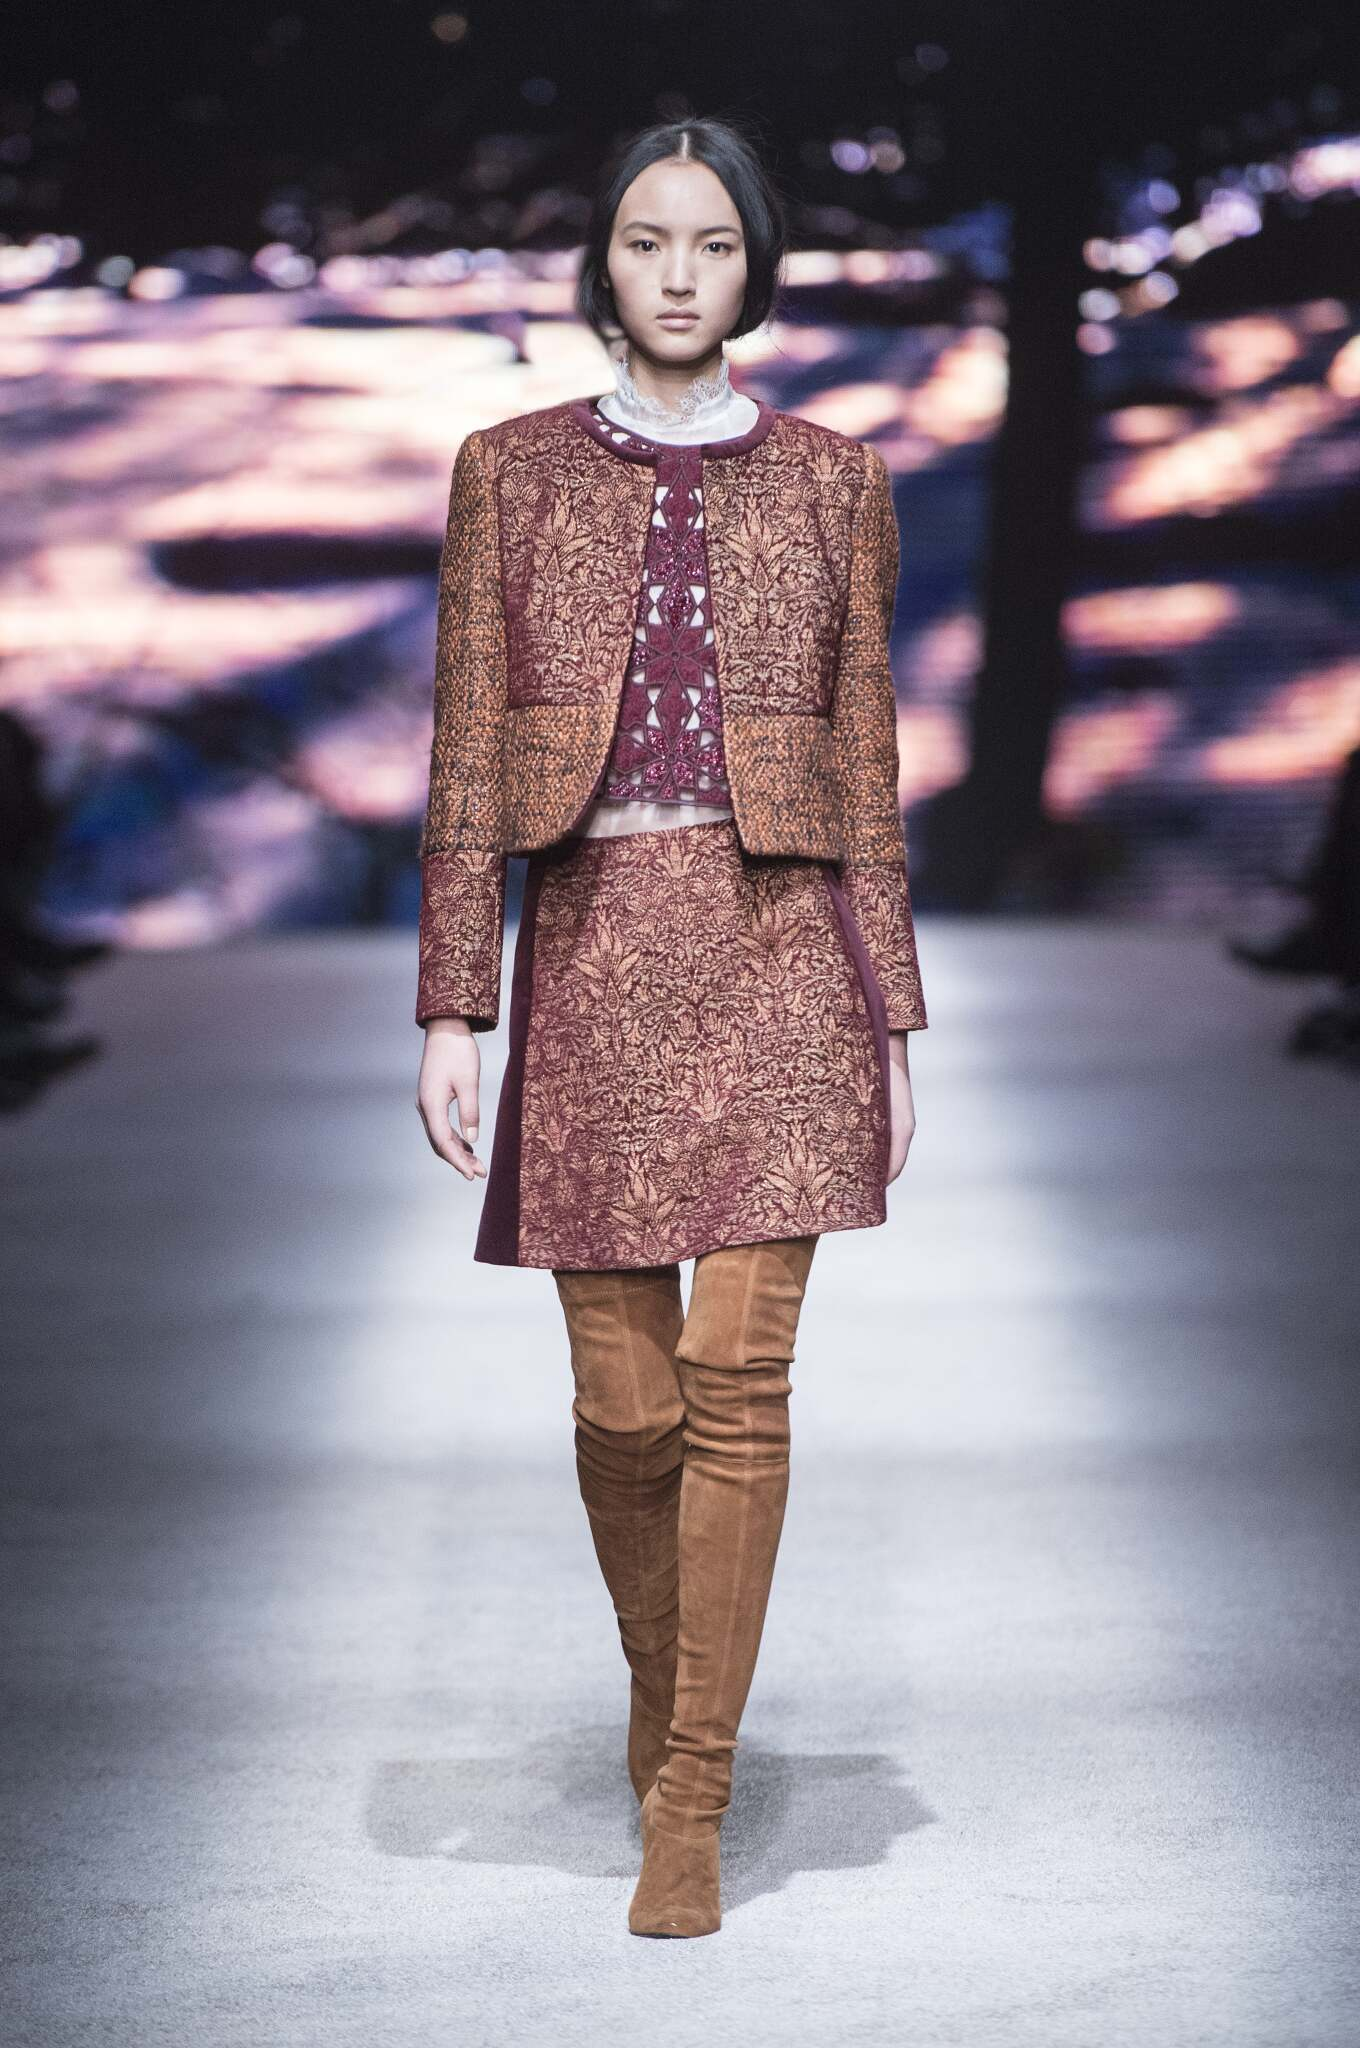 Alberta Ferretti Fall Winter 2015 16 Womenswear Collection Milan Fashion Week Fashion Show